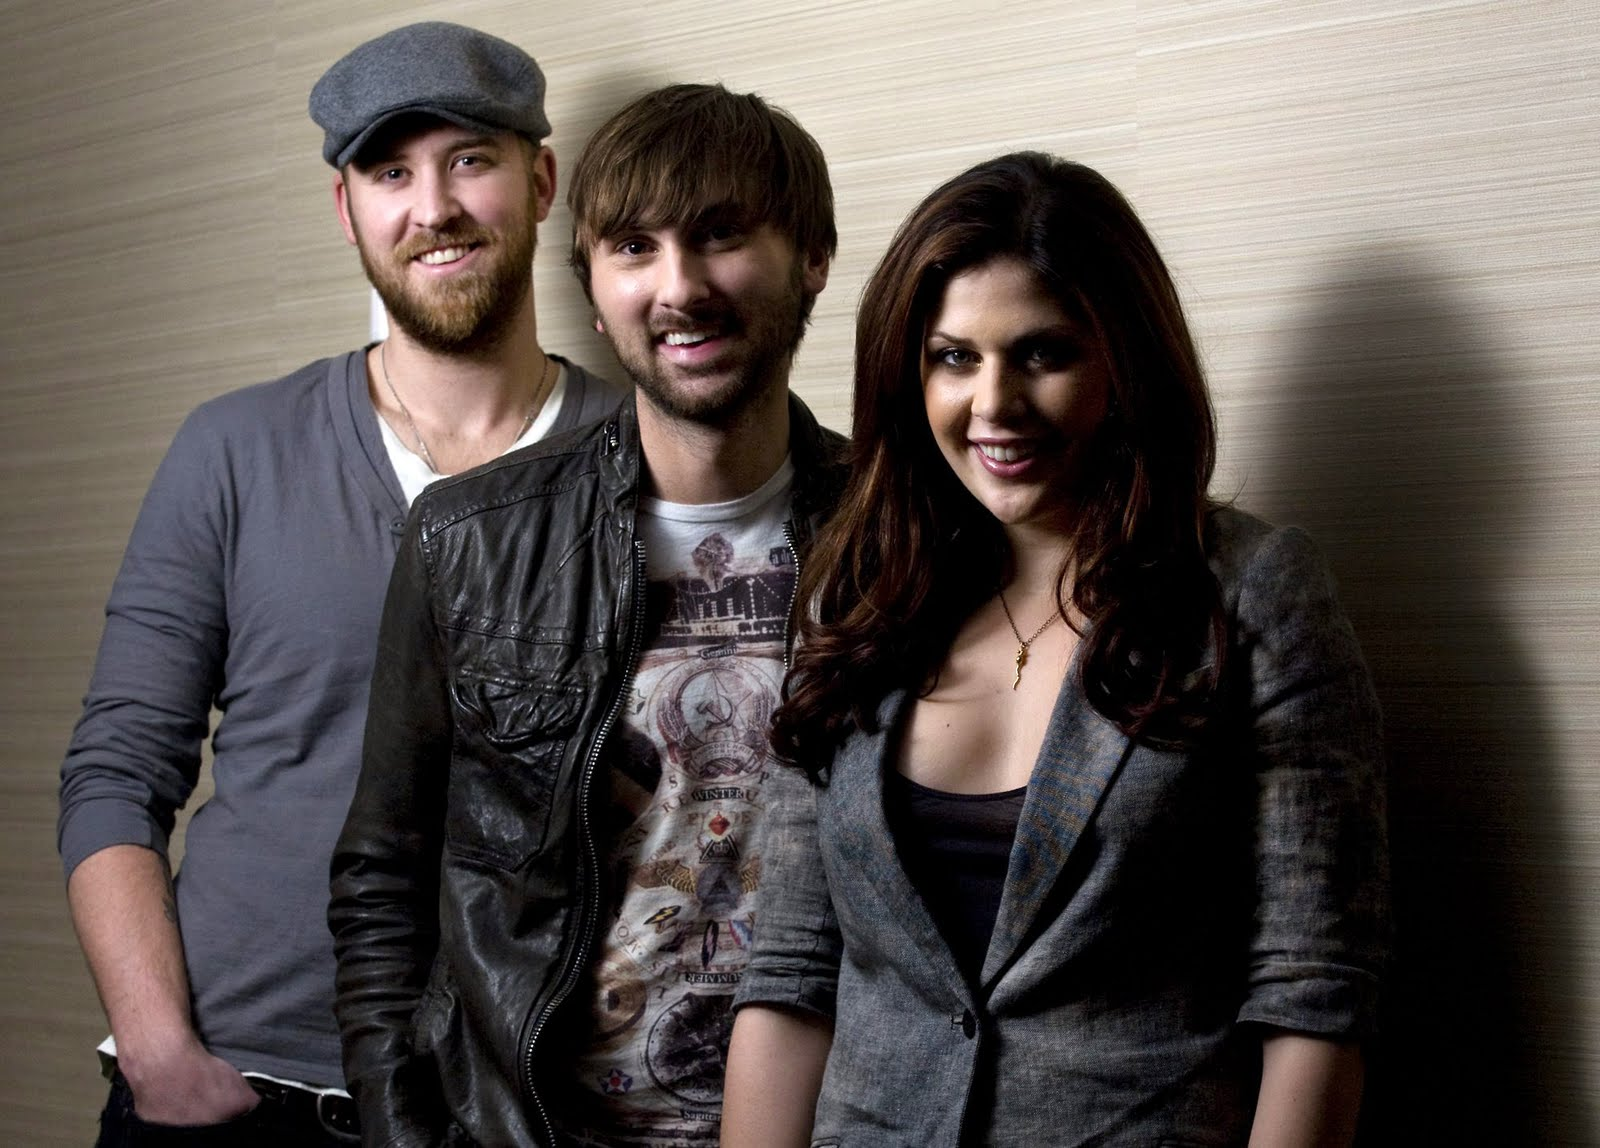 http://3.bp.blogspot.com/-ESo-glSdmmA/TcP5F9fzJvI/AAAAAAAAAXk/KjQ8dD5WUJs/s1600/WIR+Music+Lady+Antebellum+dress+fashion.jpg